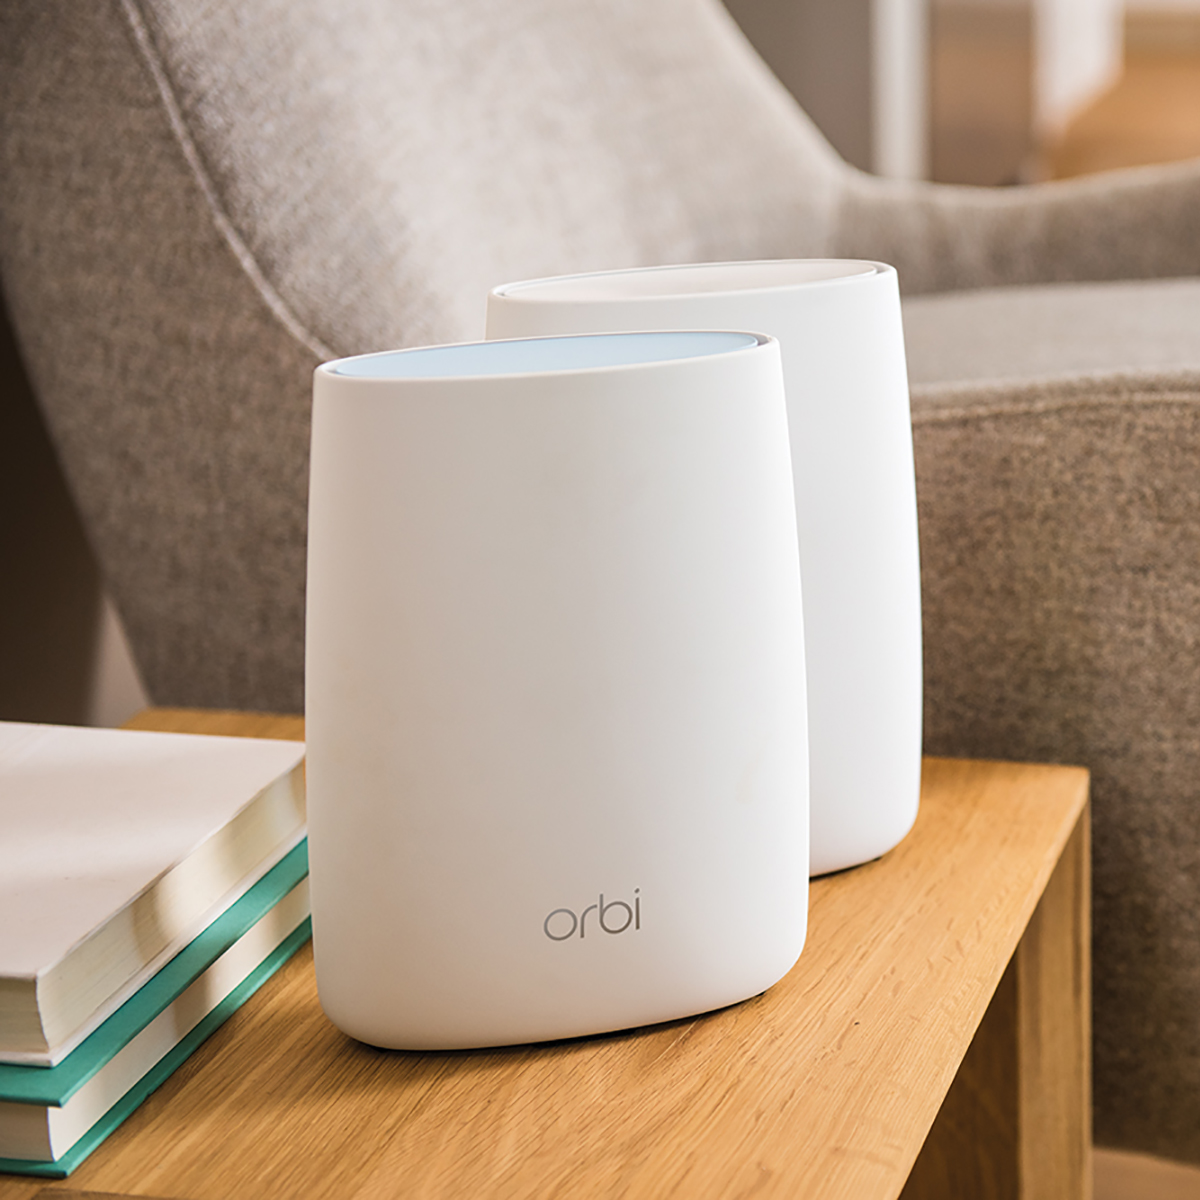 Orbi vs  Google WiFi vs  Eero